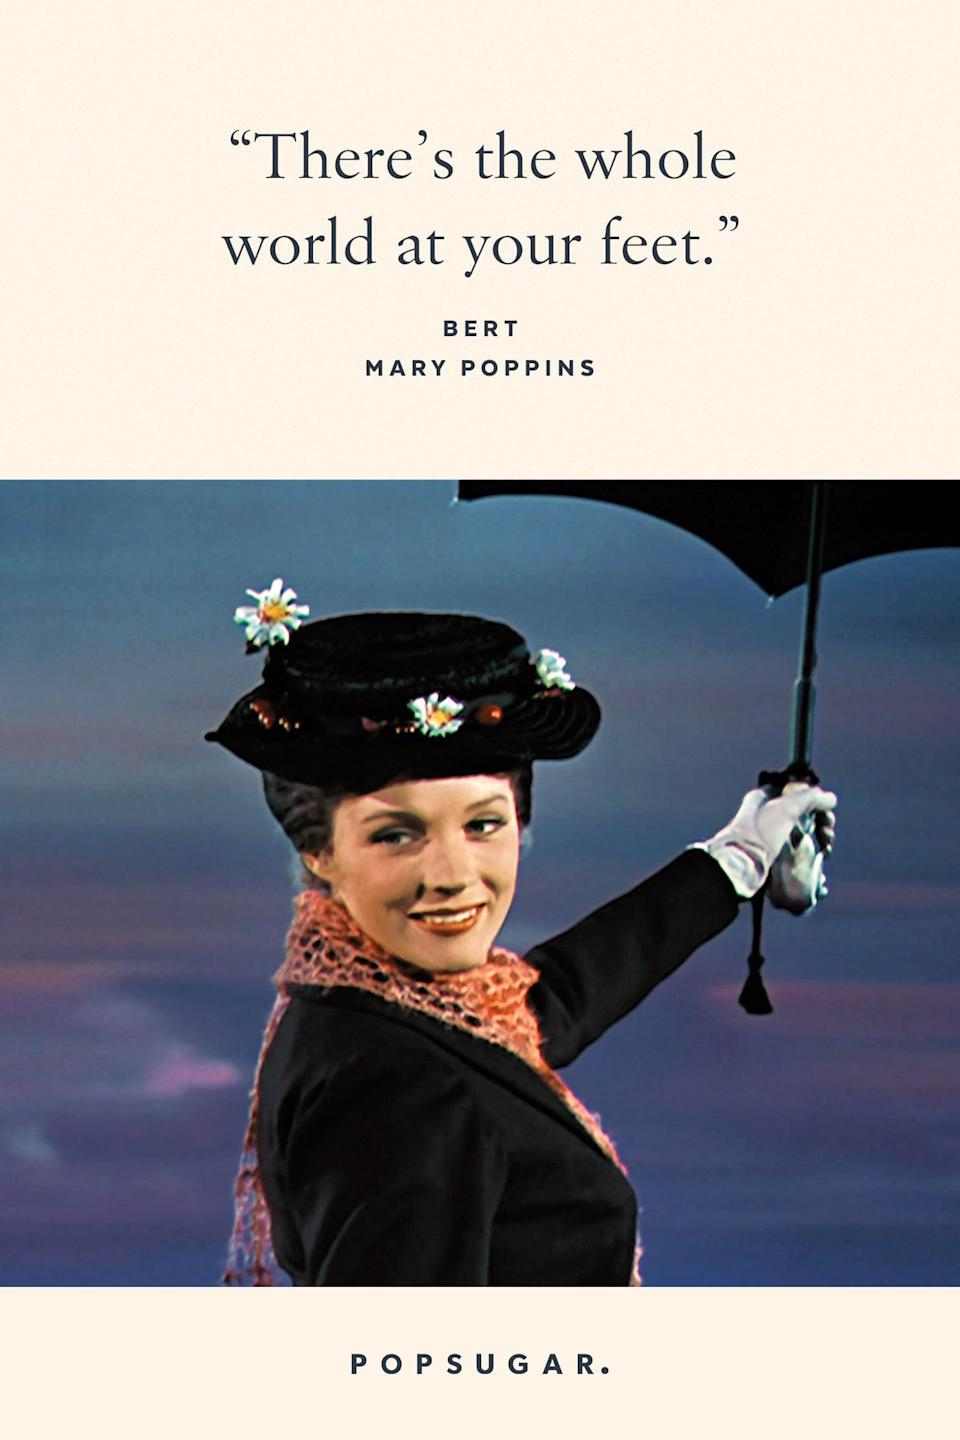 "<p>""There's the whole world at your feet."" - Bert, <b>Mary Poppins</b></p>"